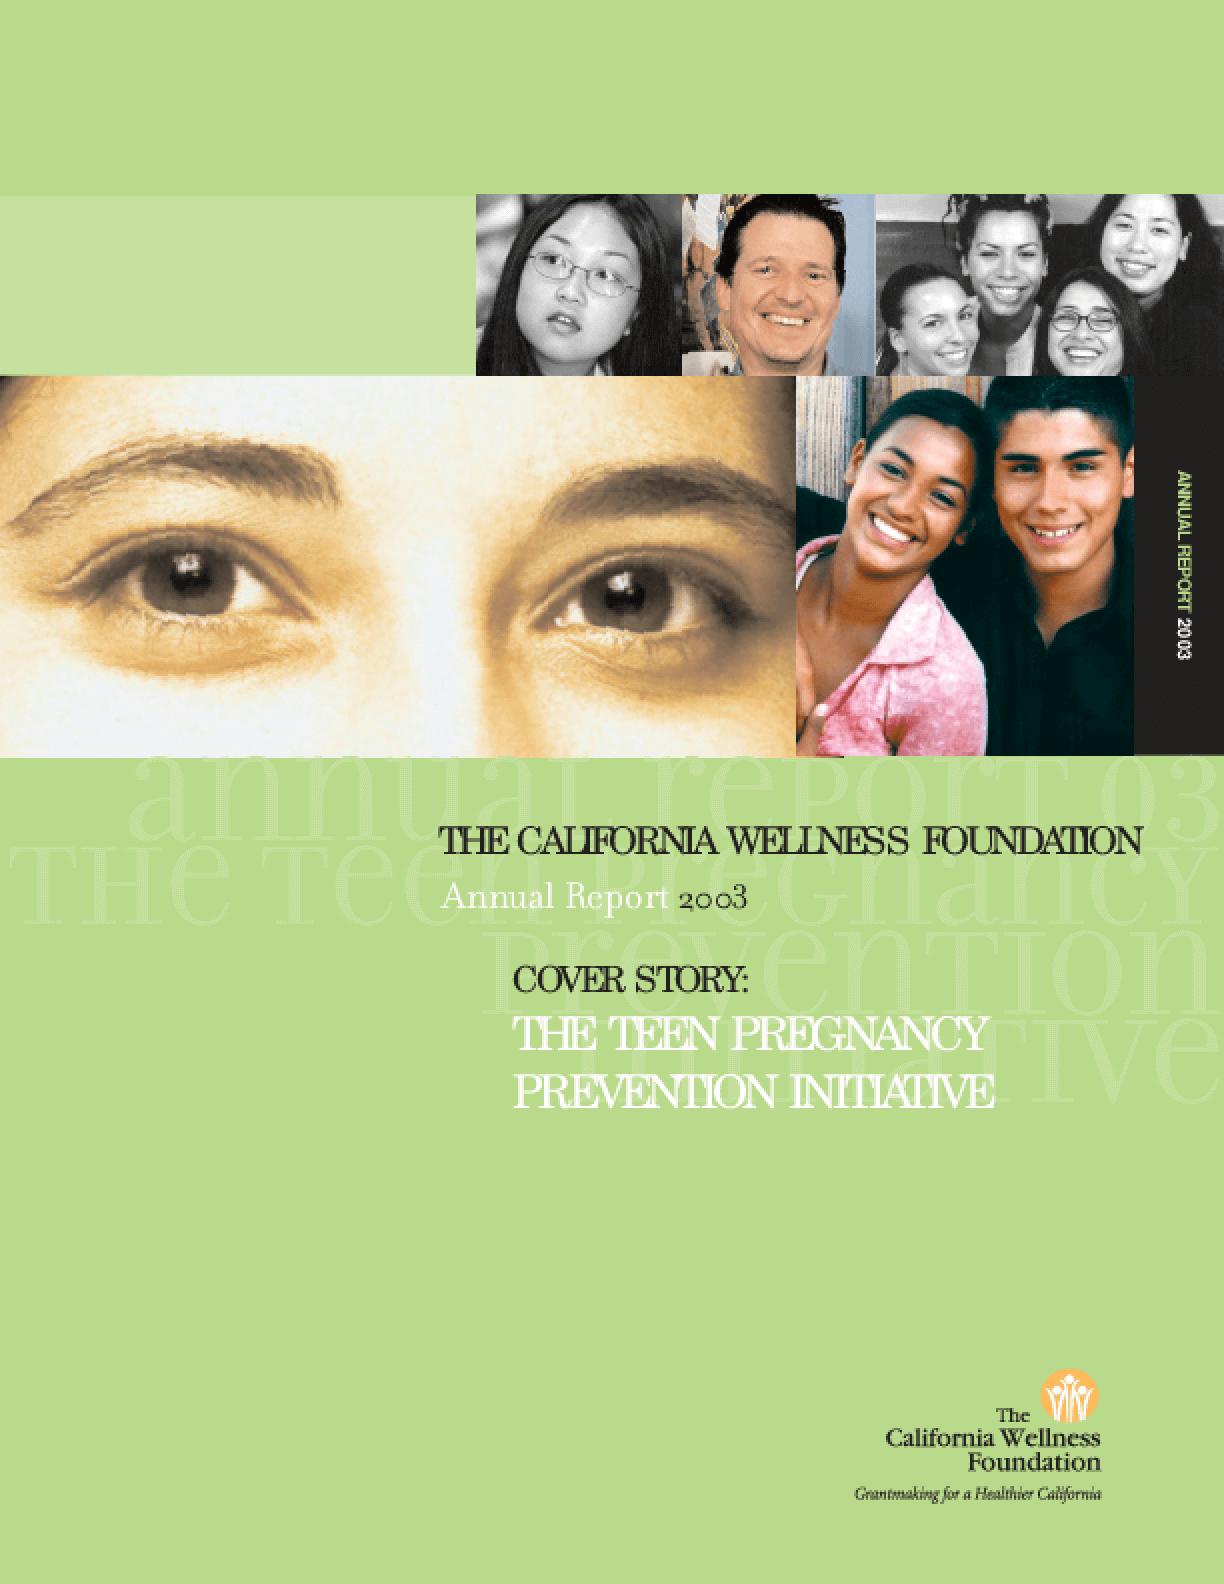 California Wellness Foundation - 2003 Annual Report